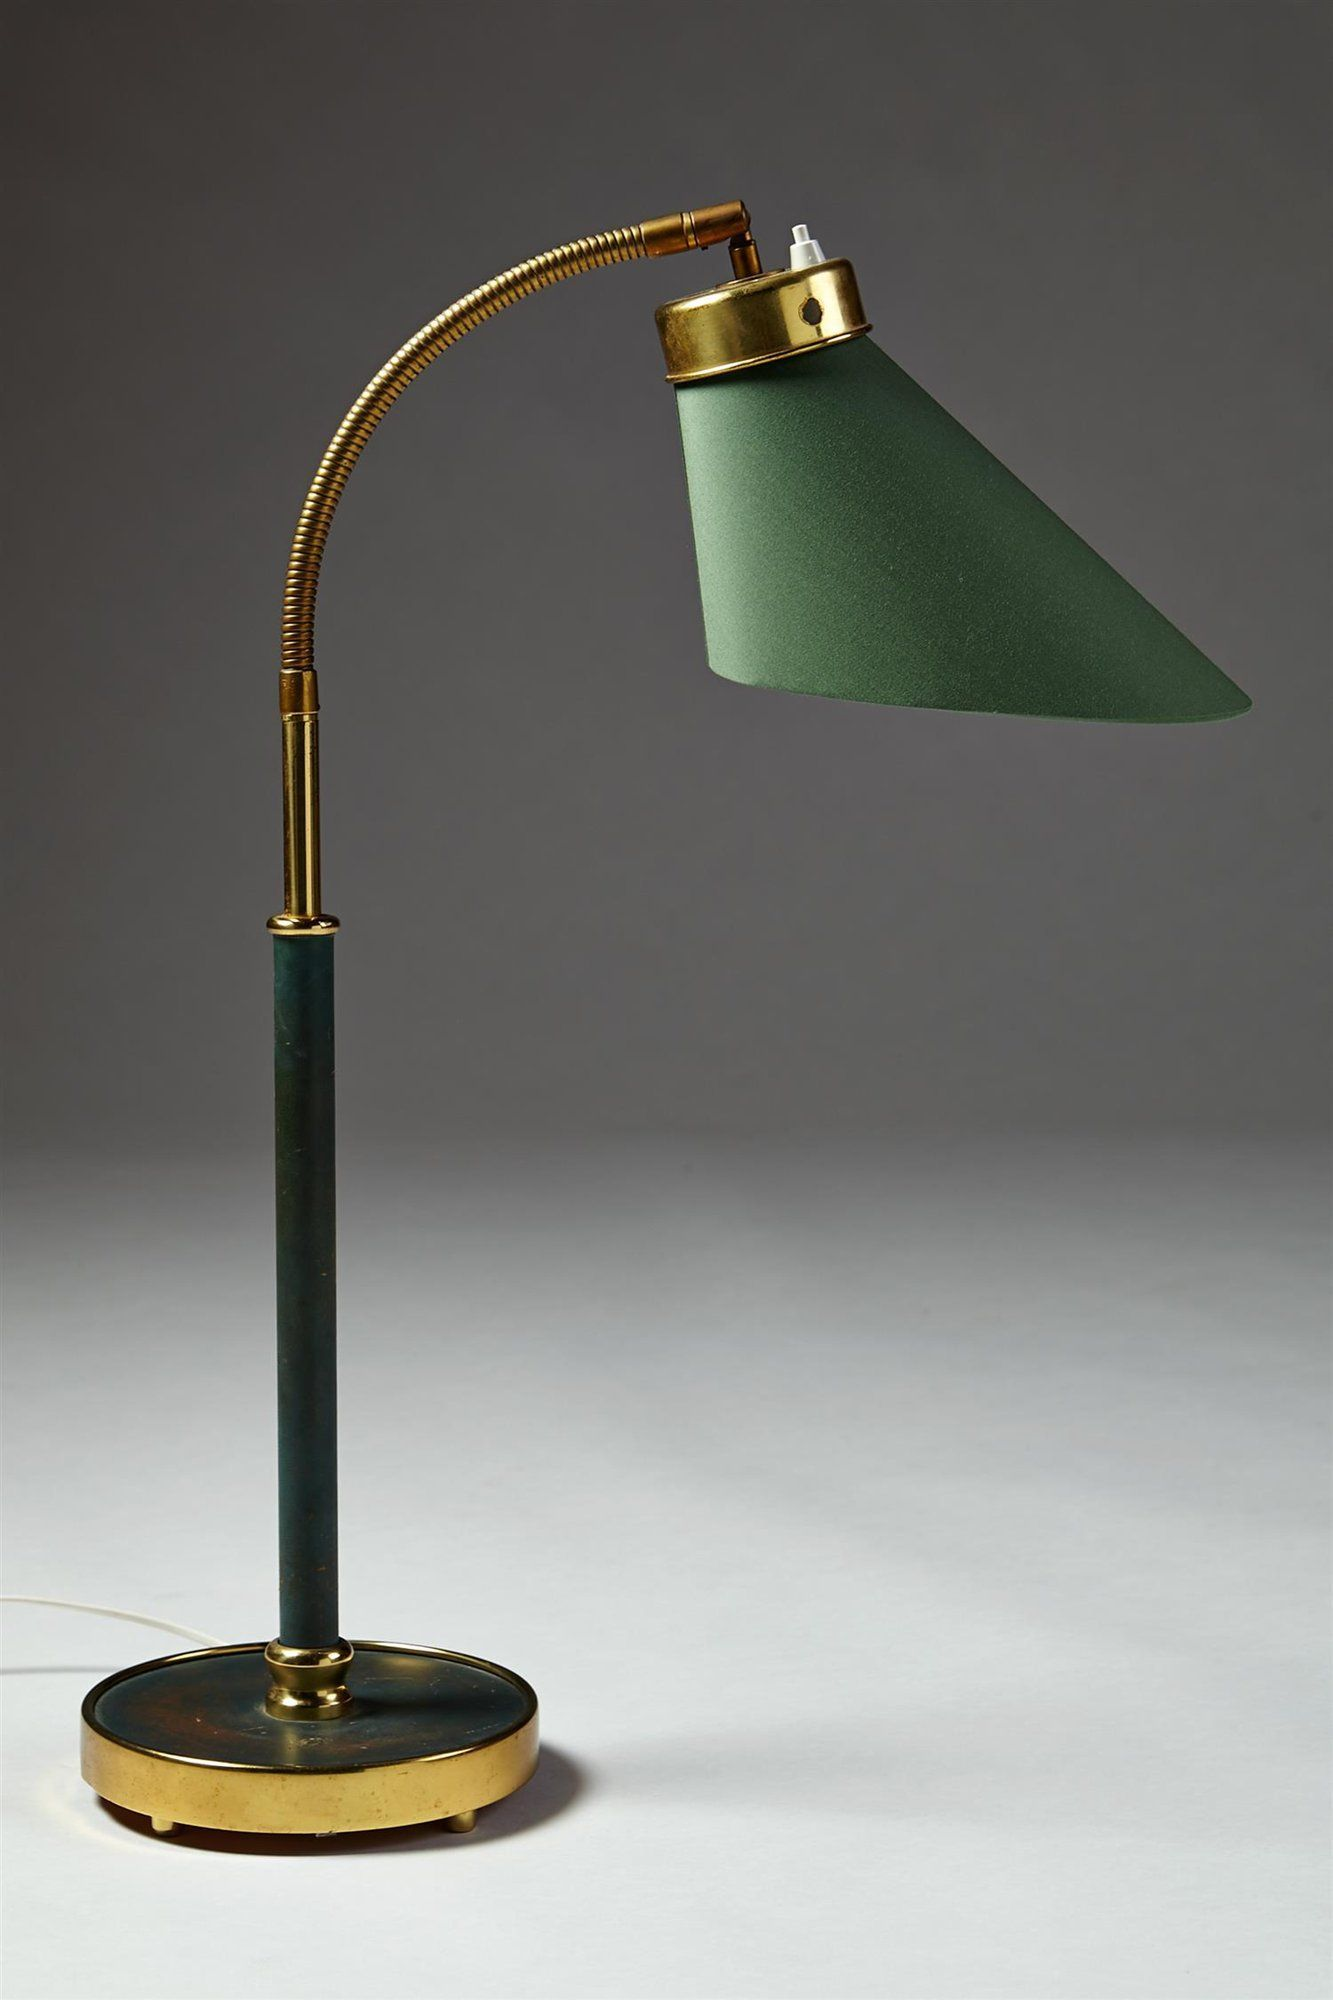 Table Lamp Designed By Josef Frank For Svenskt Tenn Sweden 1940 S Lacquered Brass Polished Brass And Cotton Lamp Design Cool Lamps Table Lamp Lighting